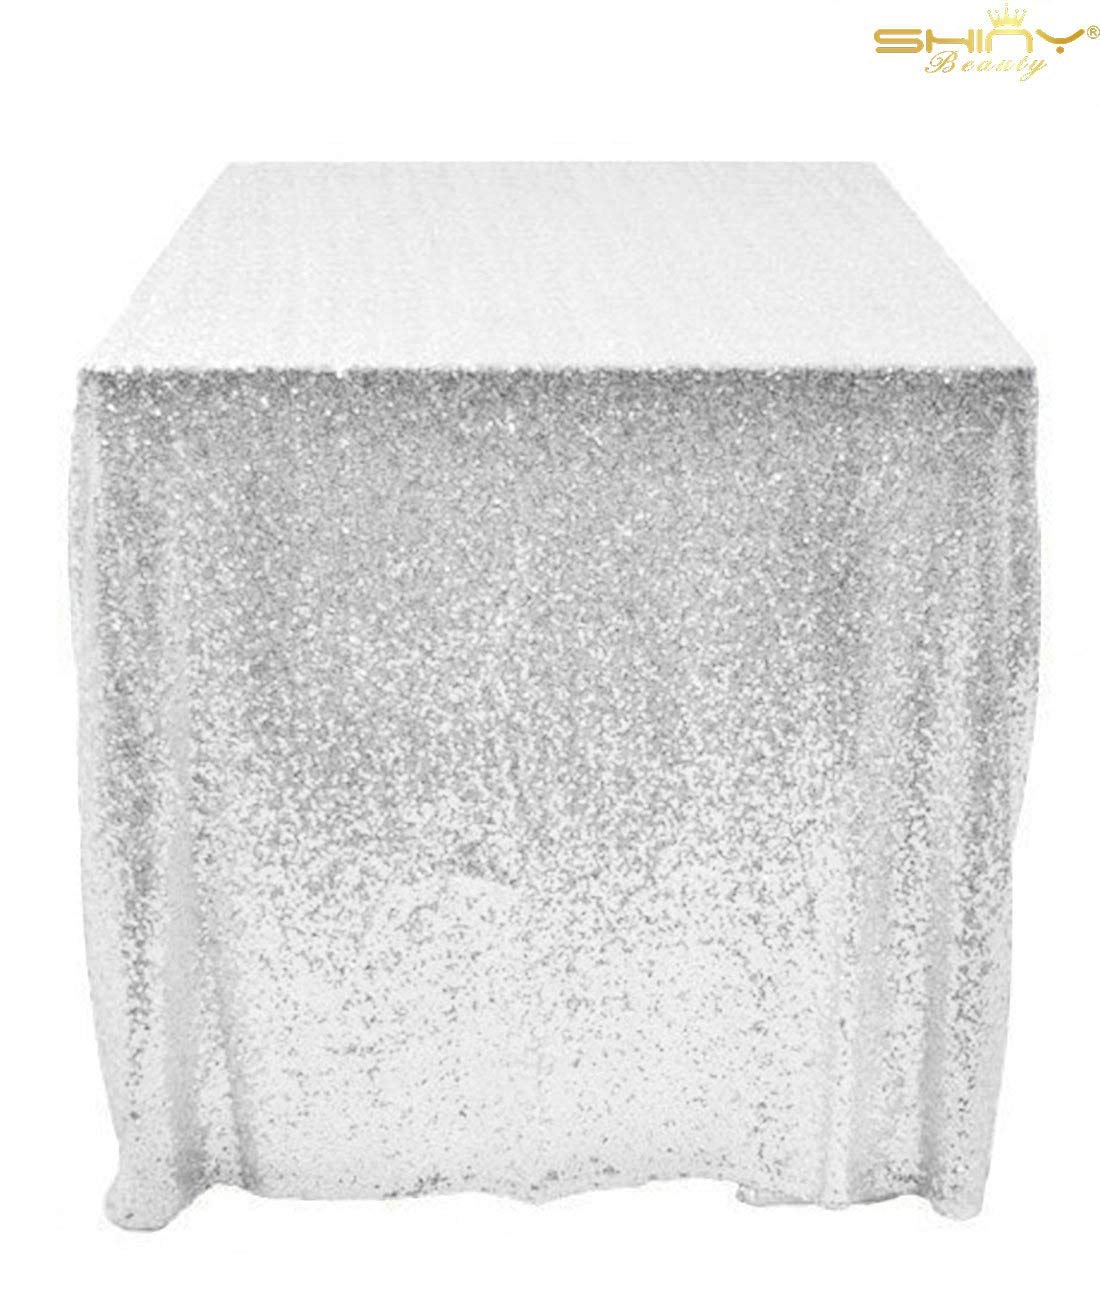 48x48-Inch Square-Sequin Tablecloth-Silver, 2017 Sequin Table Cloth/Overlay/Cover Glitz Table Linen (Silver)